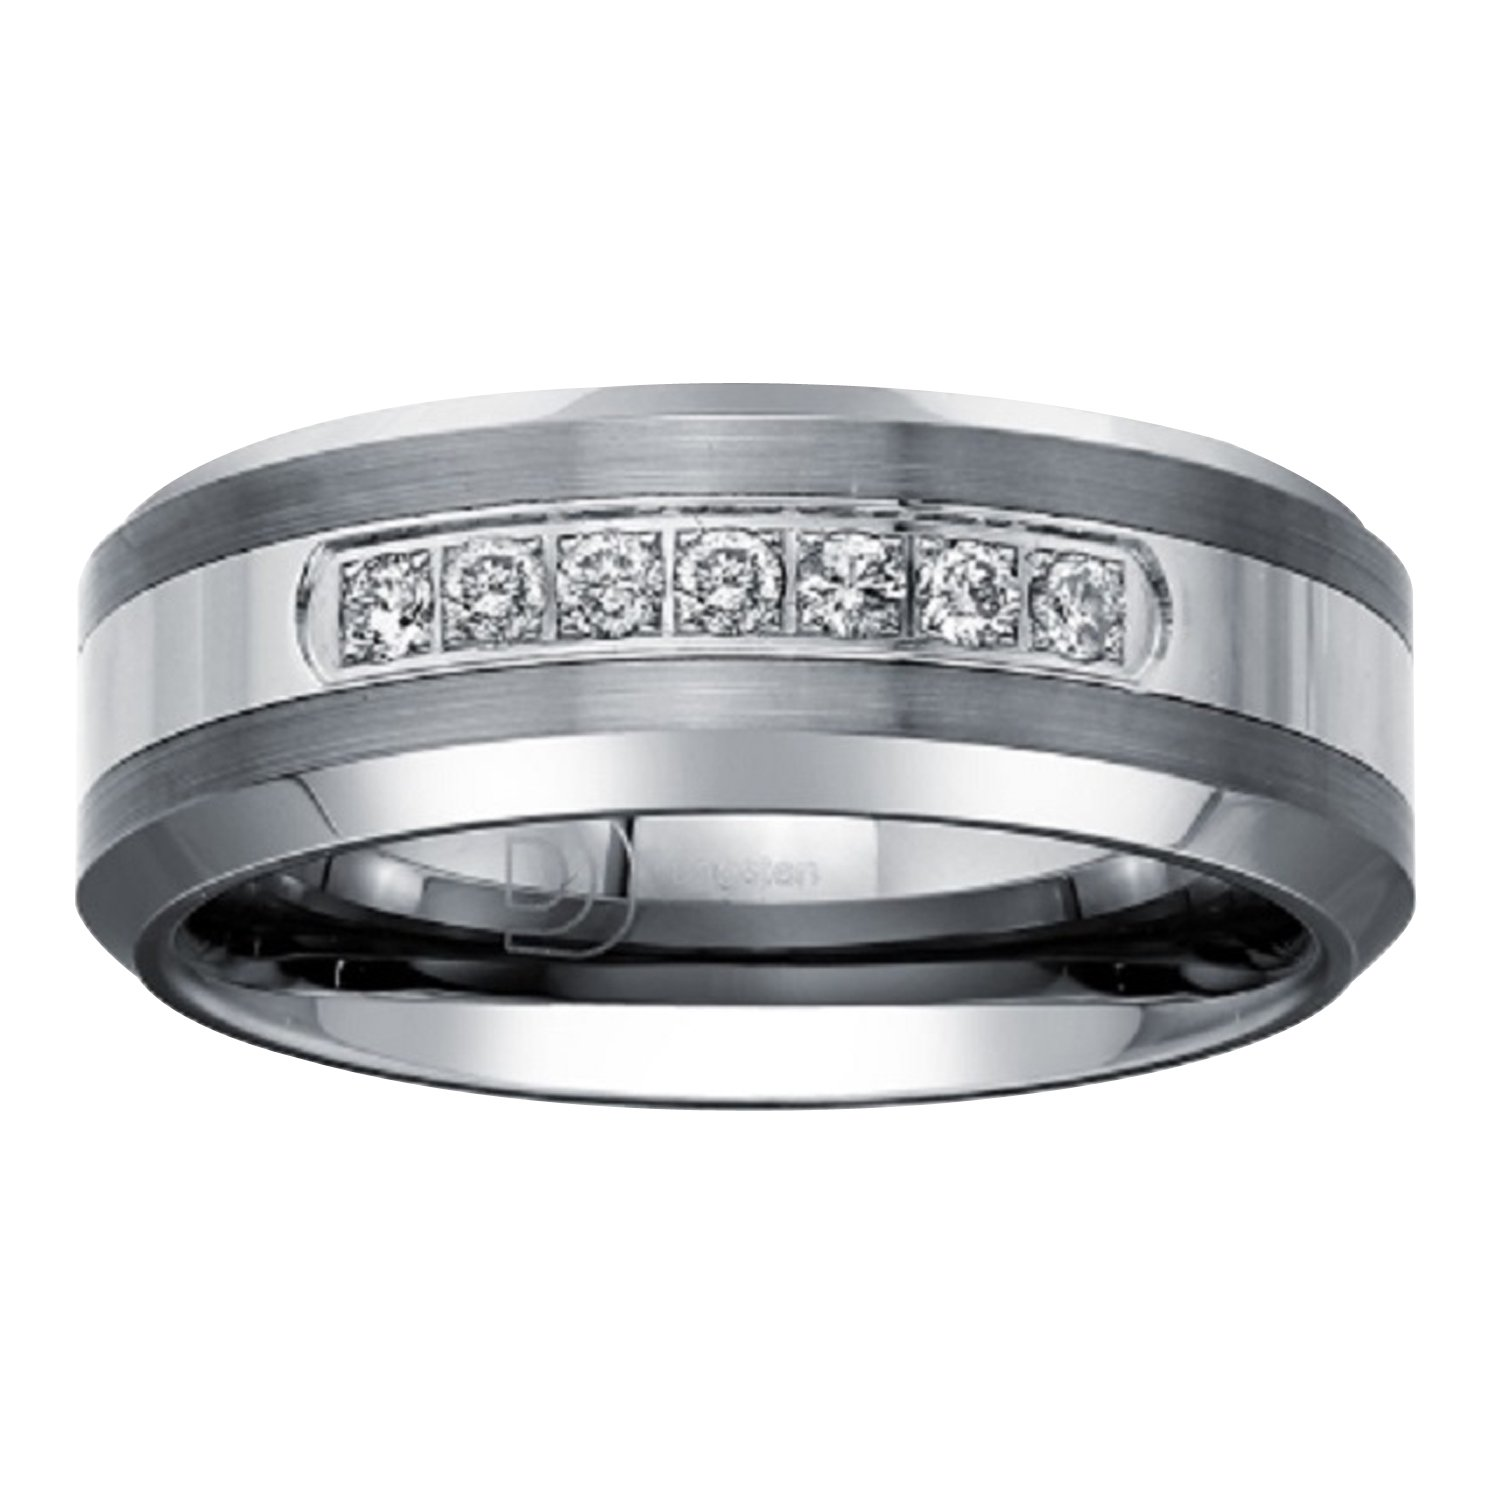 Diamond Men Band in Tungsten Carbide,10